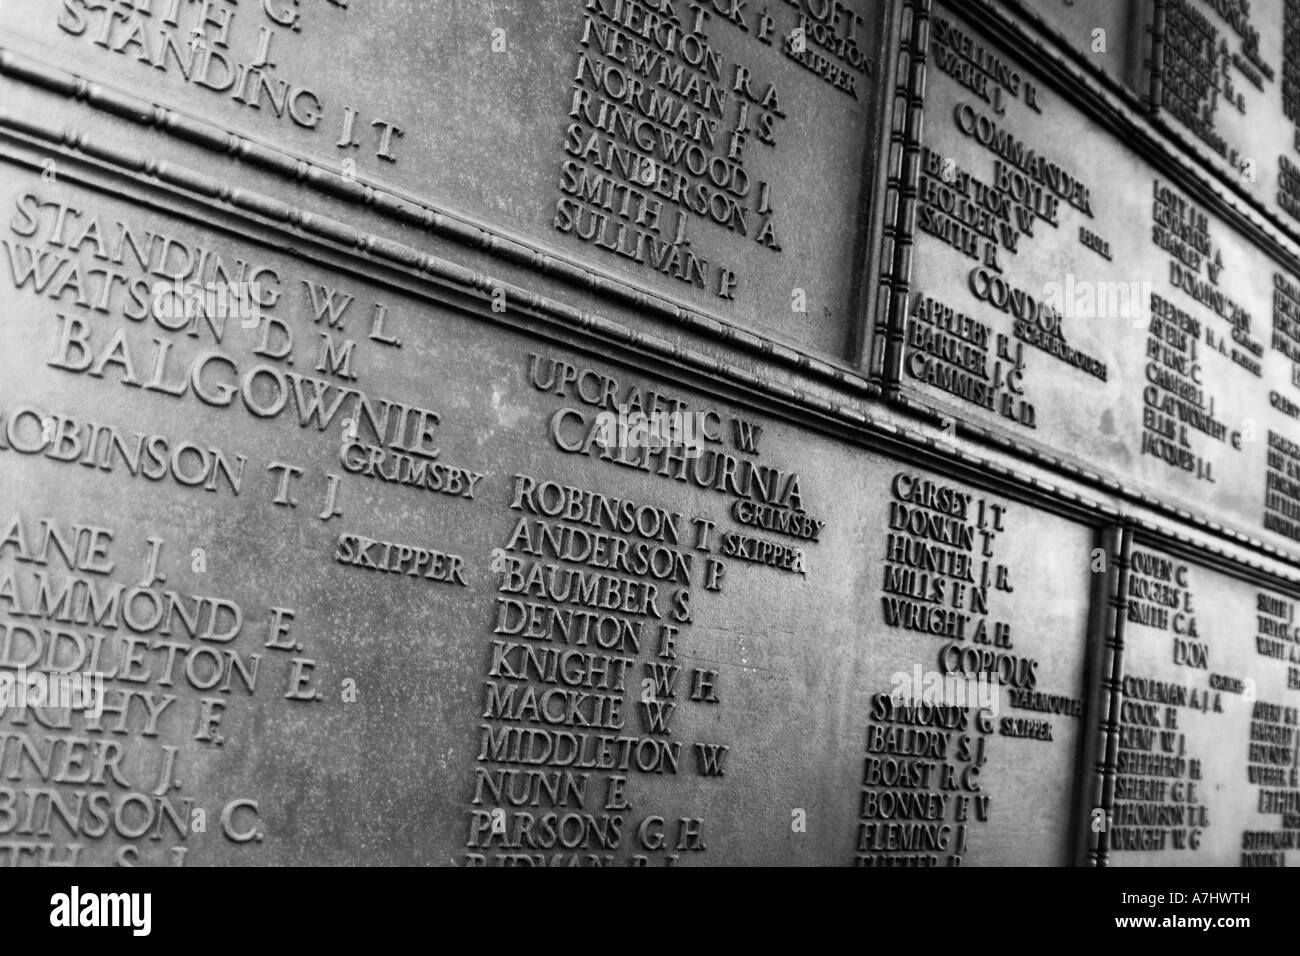 section of the trinity square war memorial London UK - Stock Image